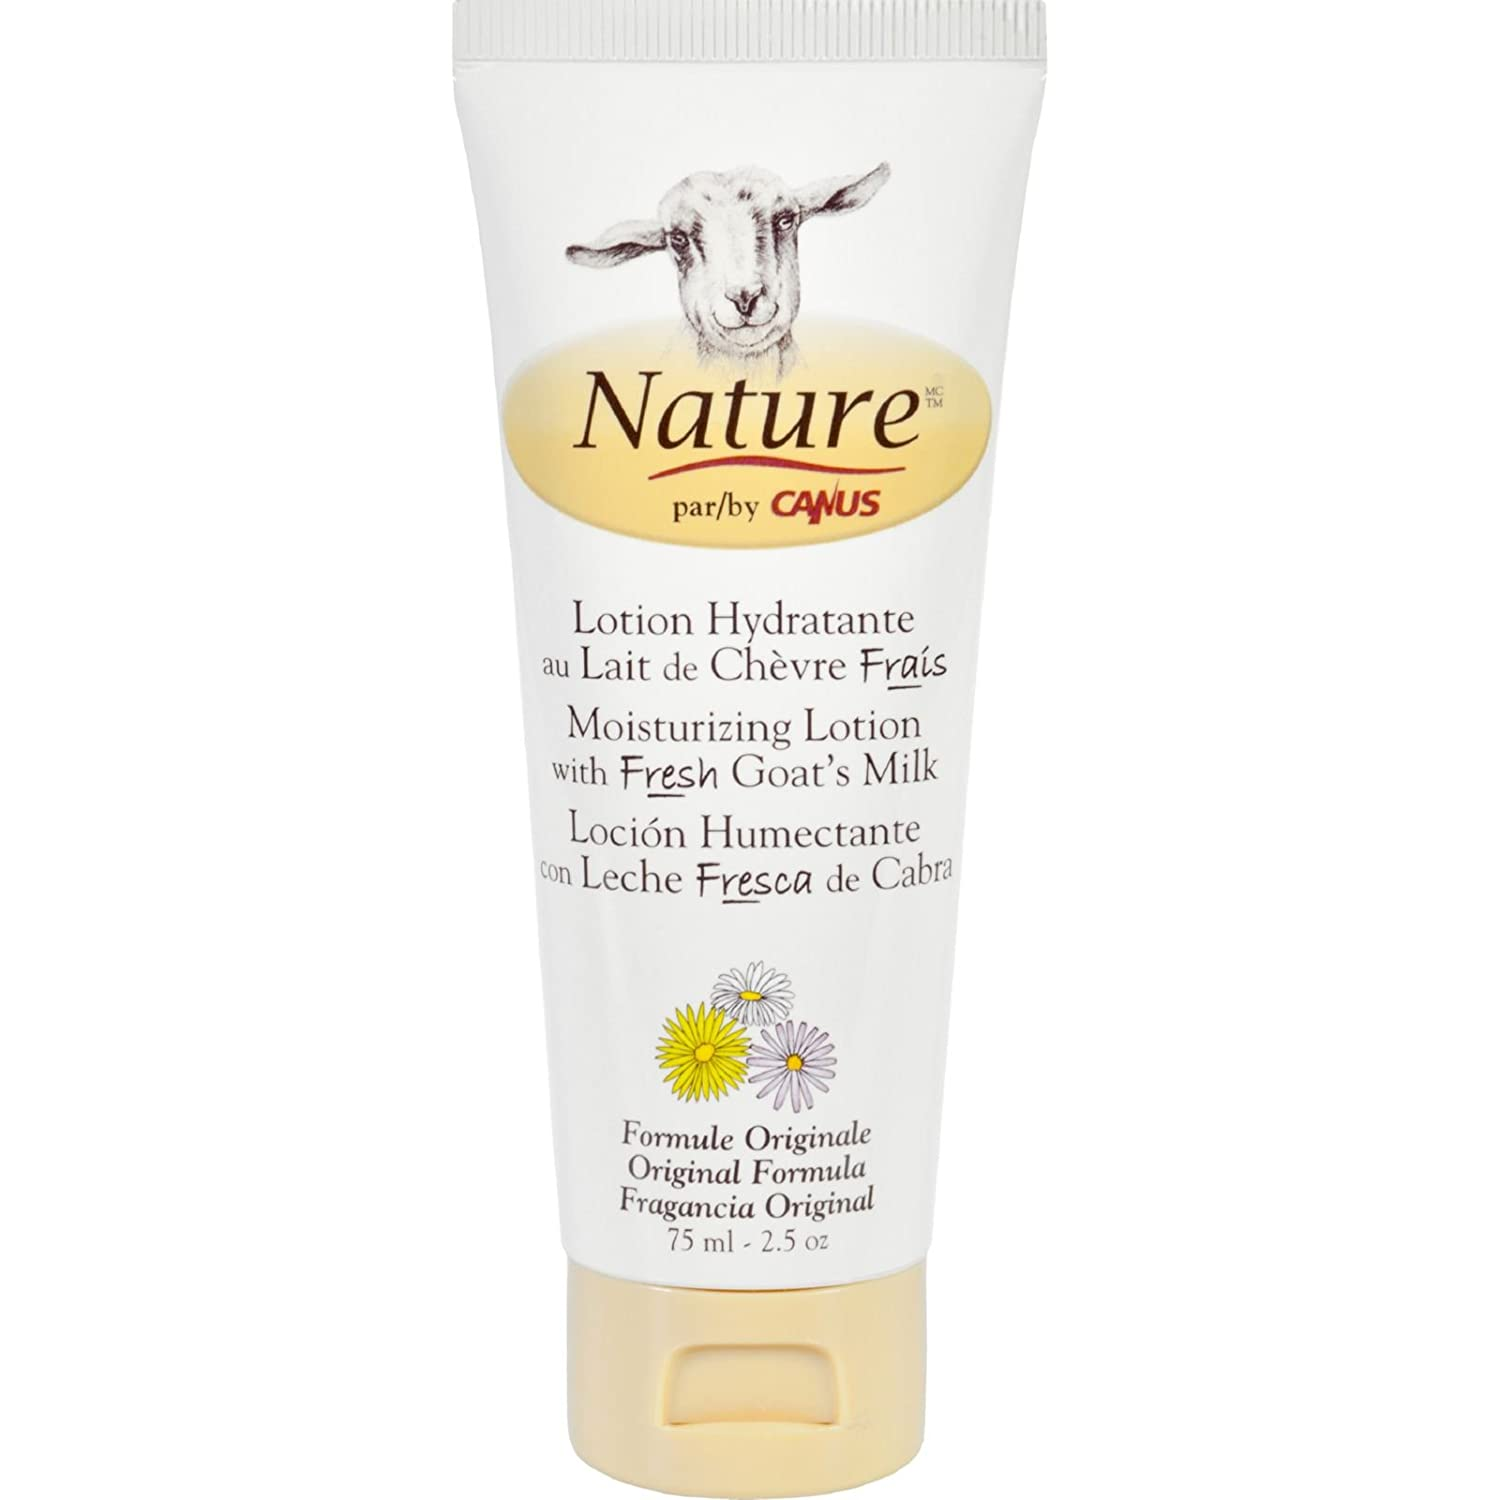 Amazon.com : Nature By Canus Lotion - Goats Milk - Nature - Original Formula - 2.5 oz : Beauty